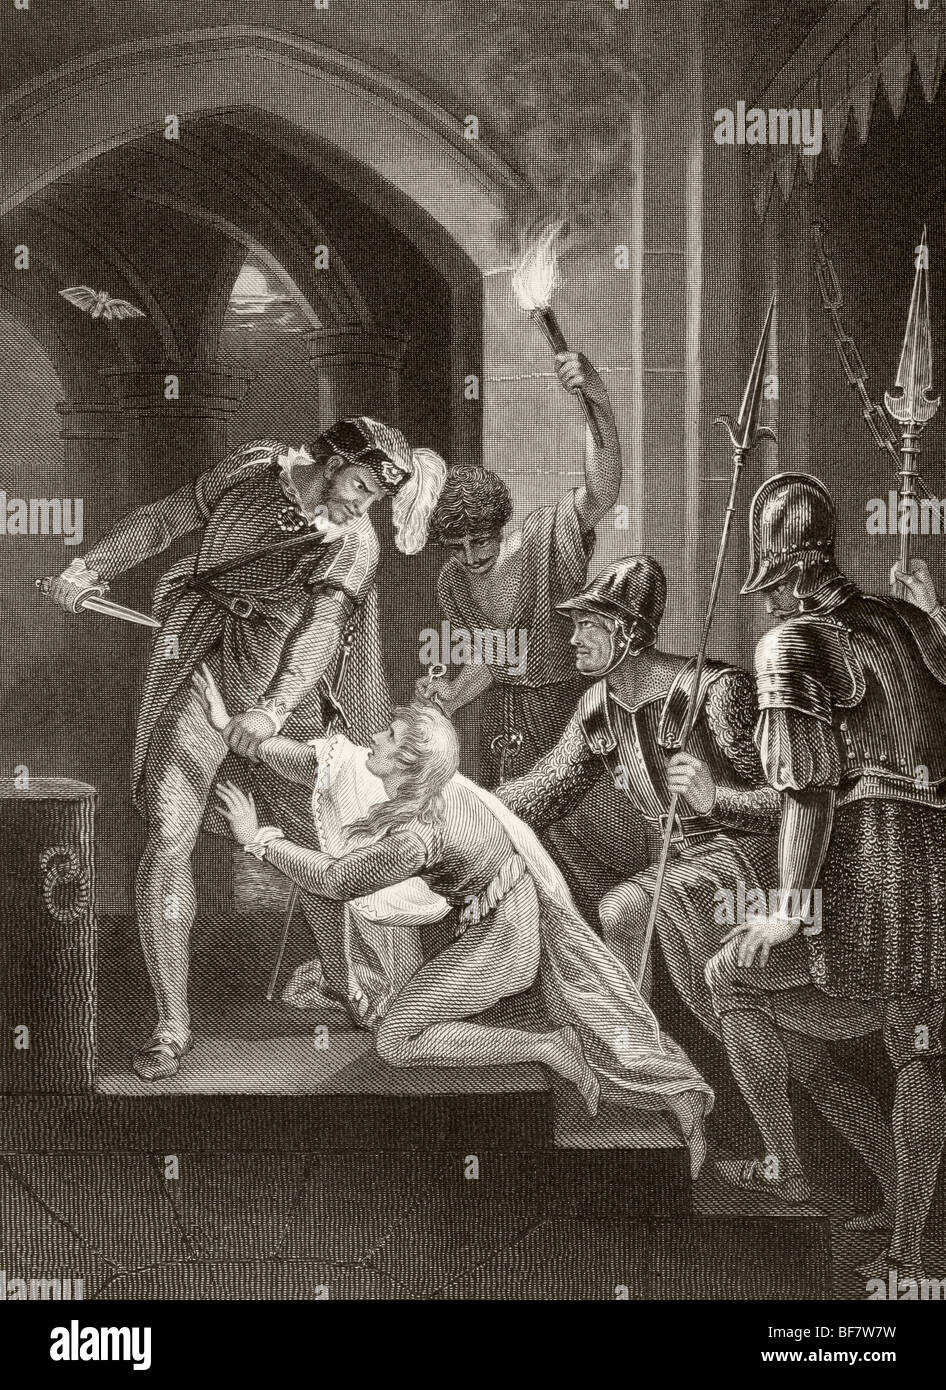 The death of Prince Arthur, 1187 to 1203, Duke of Brittany. - Stock Image